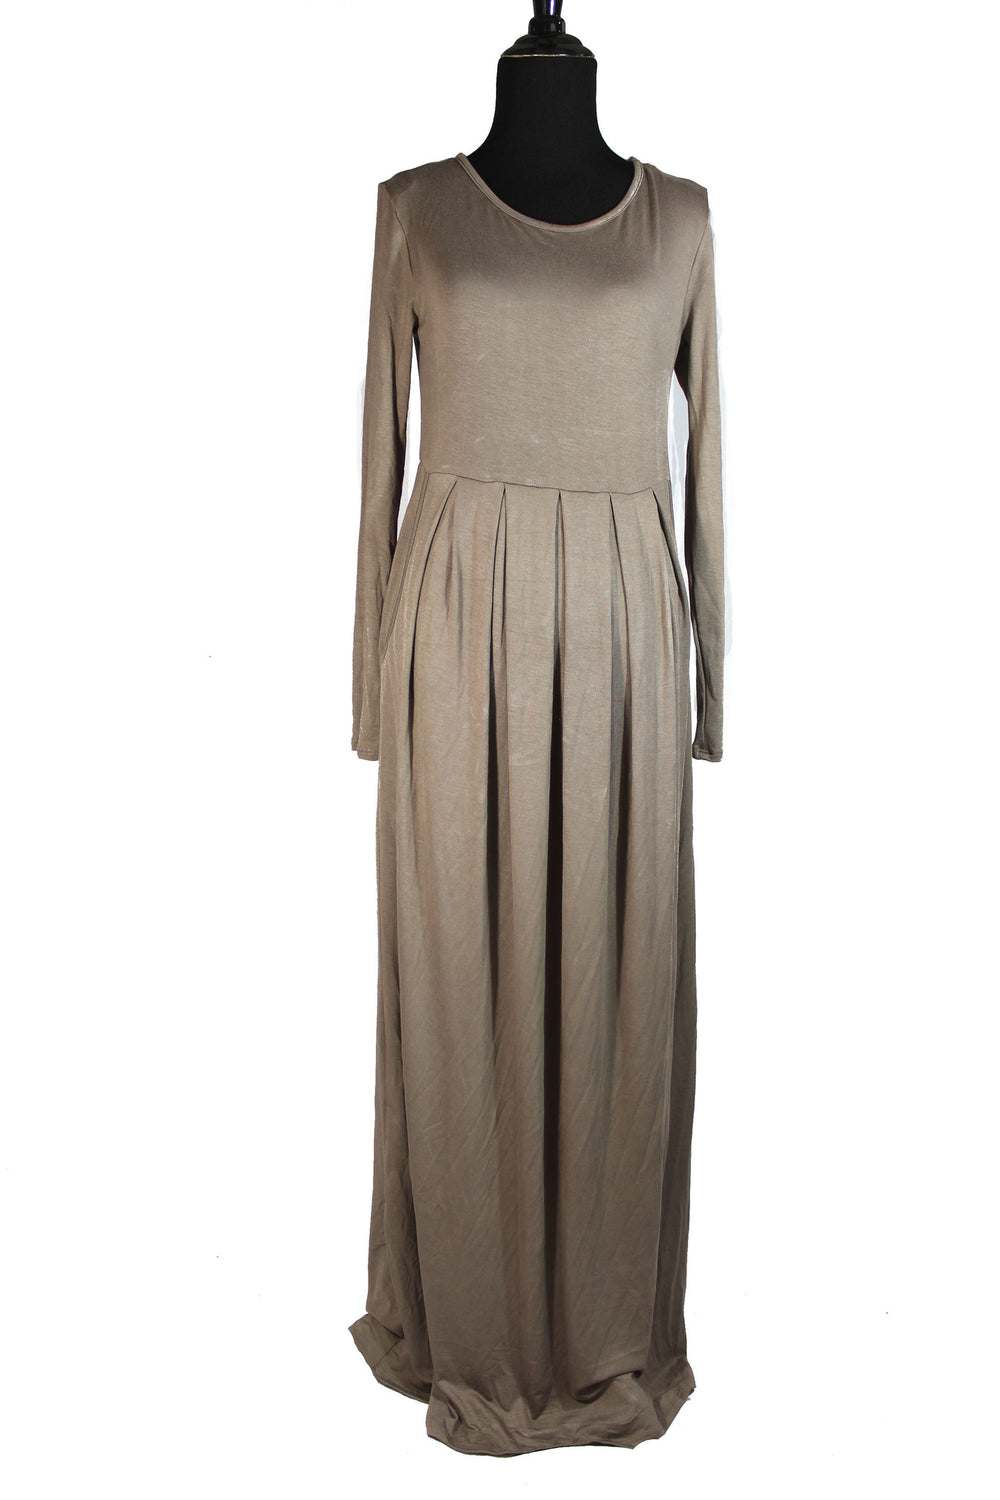 Maxi Dress with Pockets - Mocha